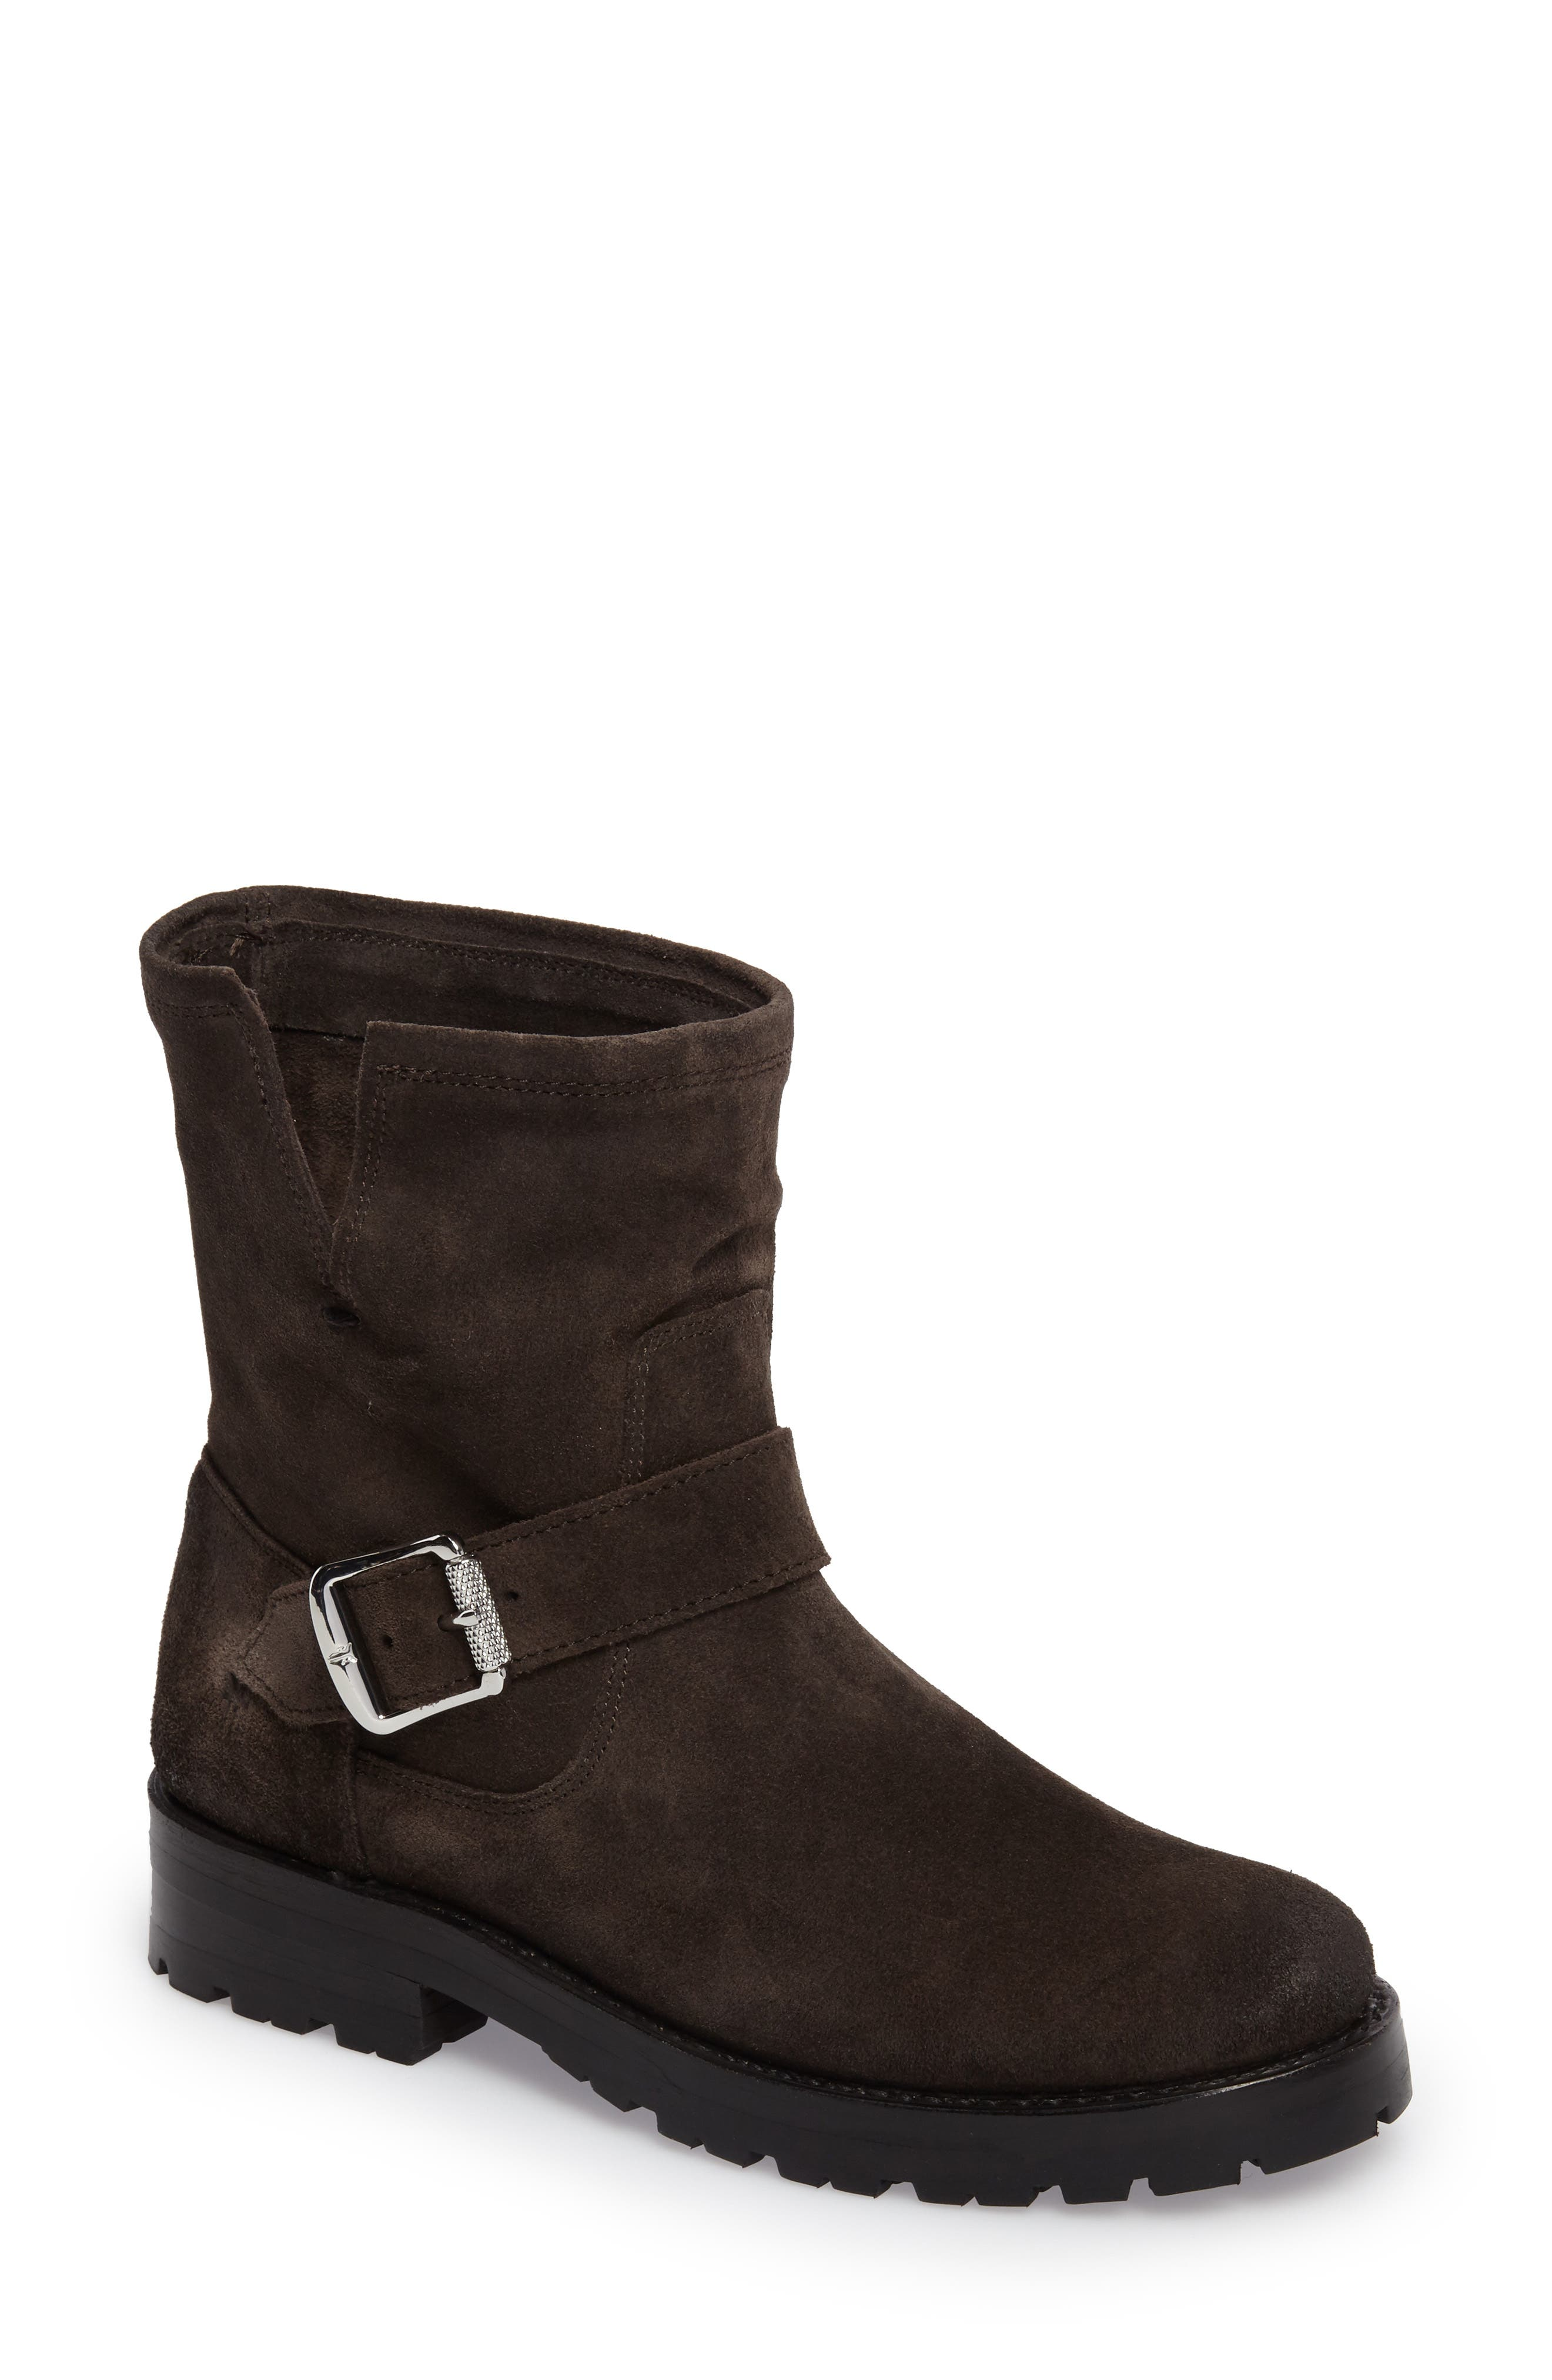 Natalie Lug Engineer Boot,                             Main thumbnail 1, color,                             Grigio Suede